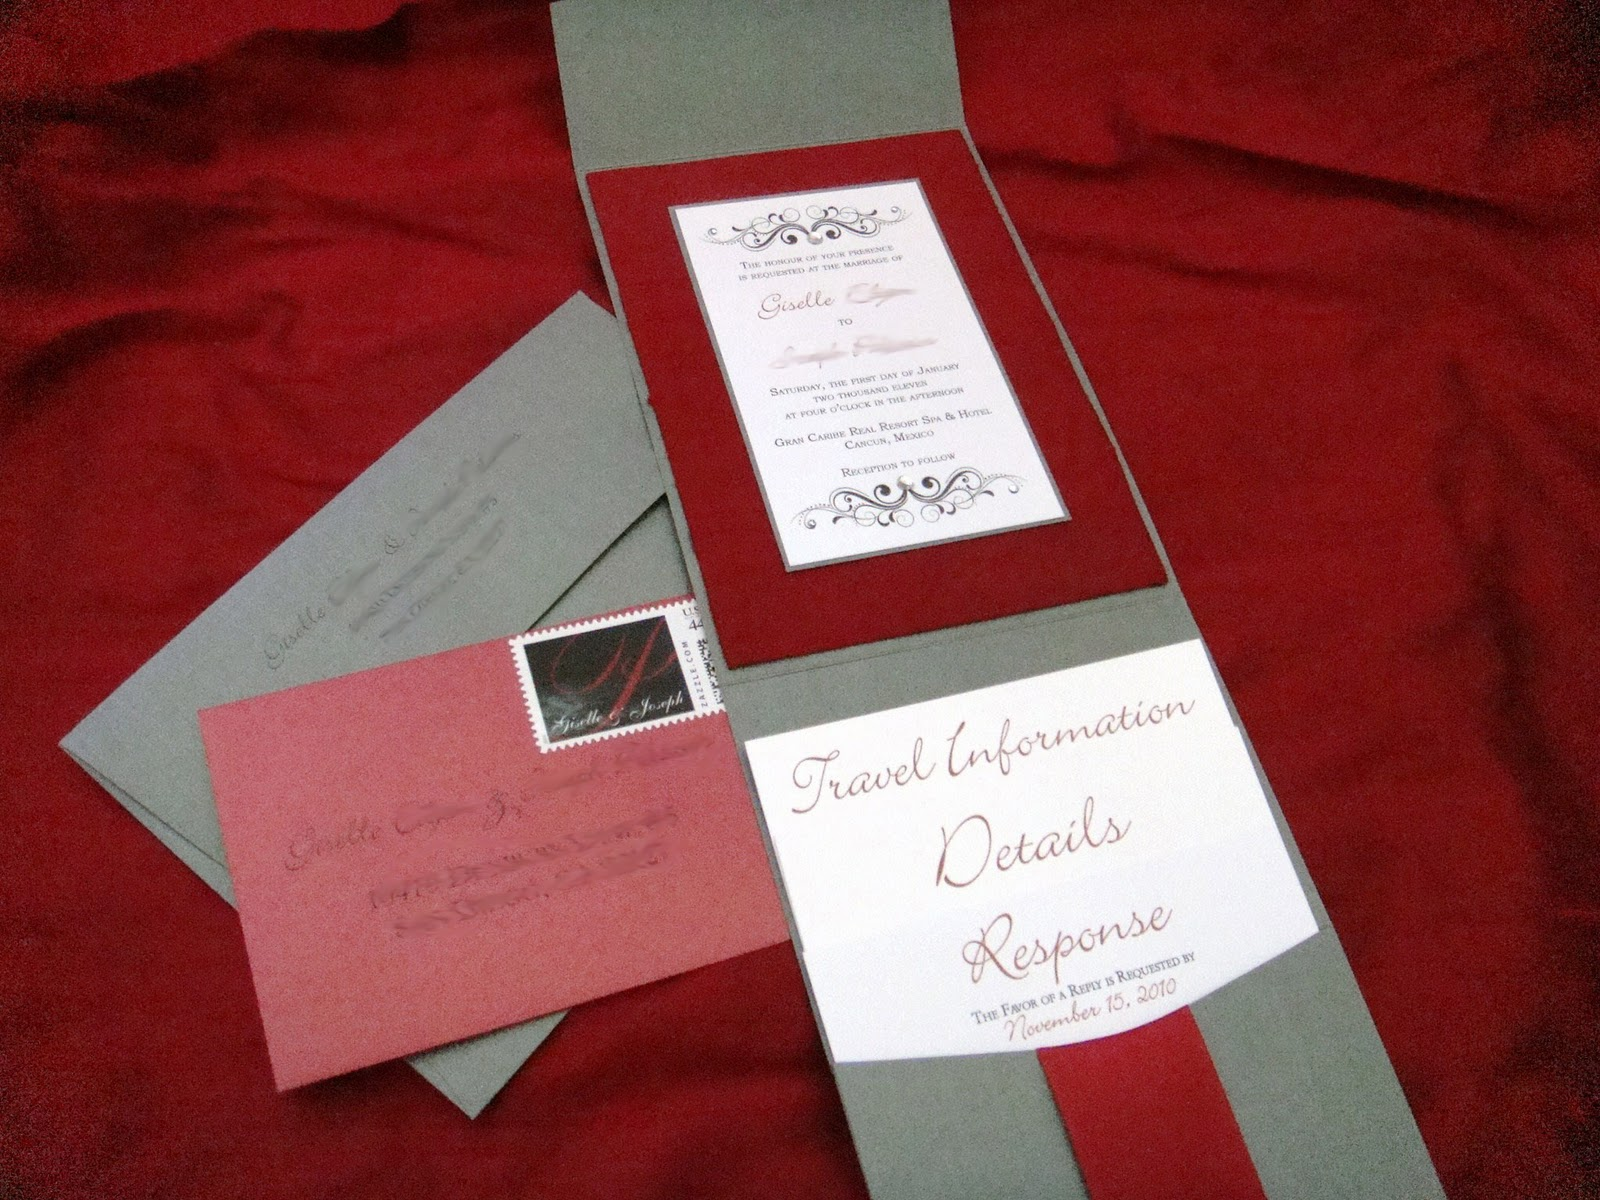 GE Designs: GE Wedding: Invitations... Check!